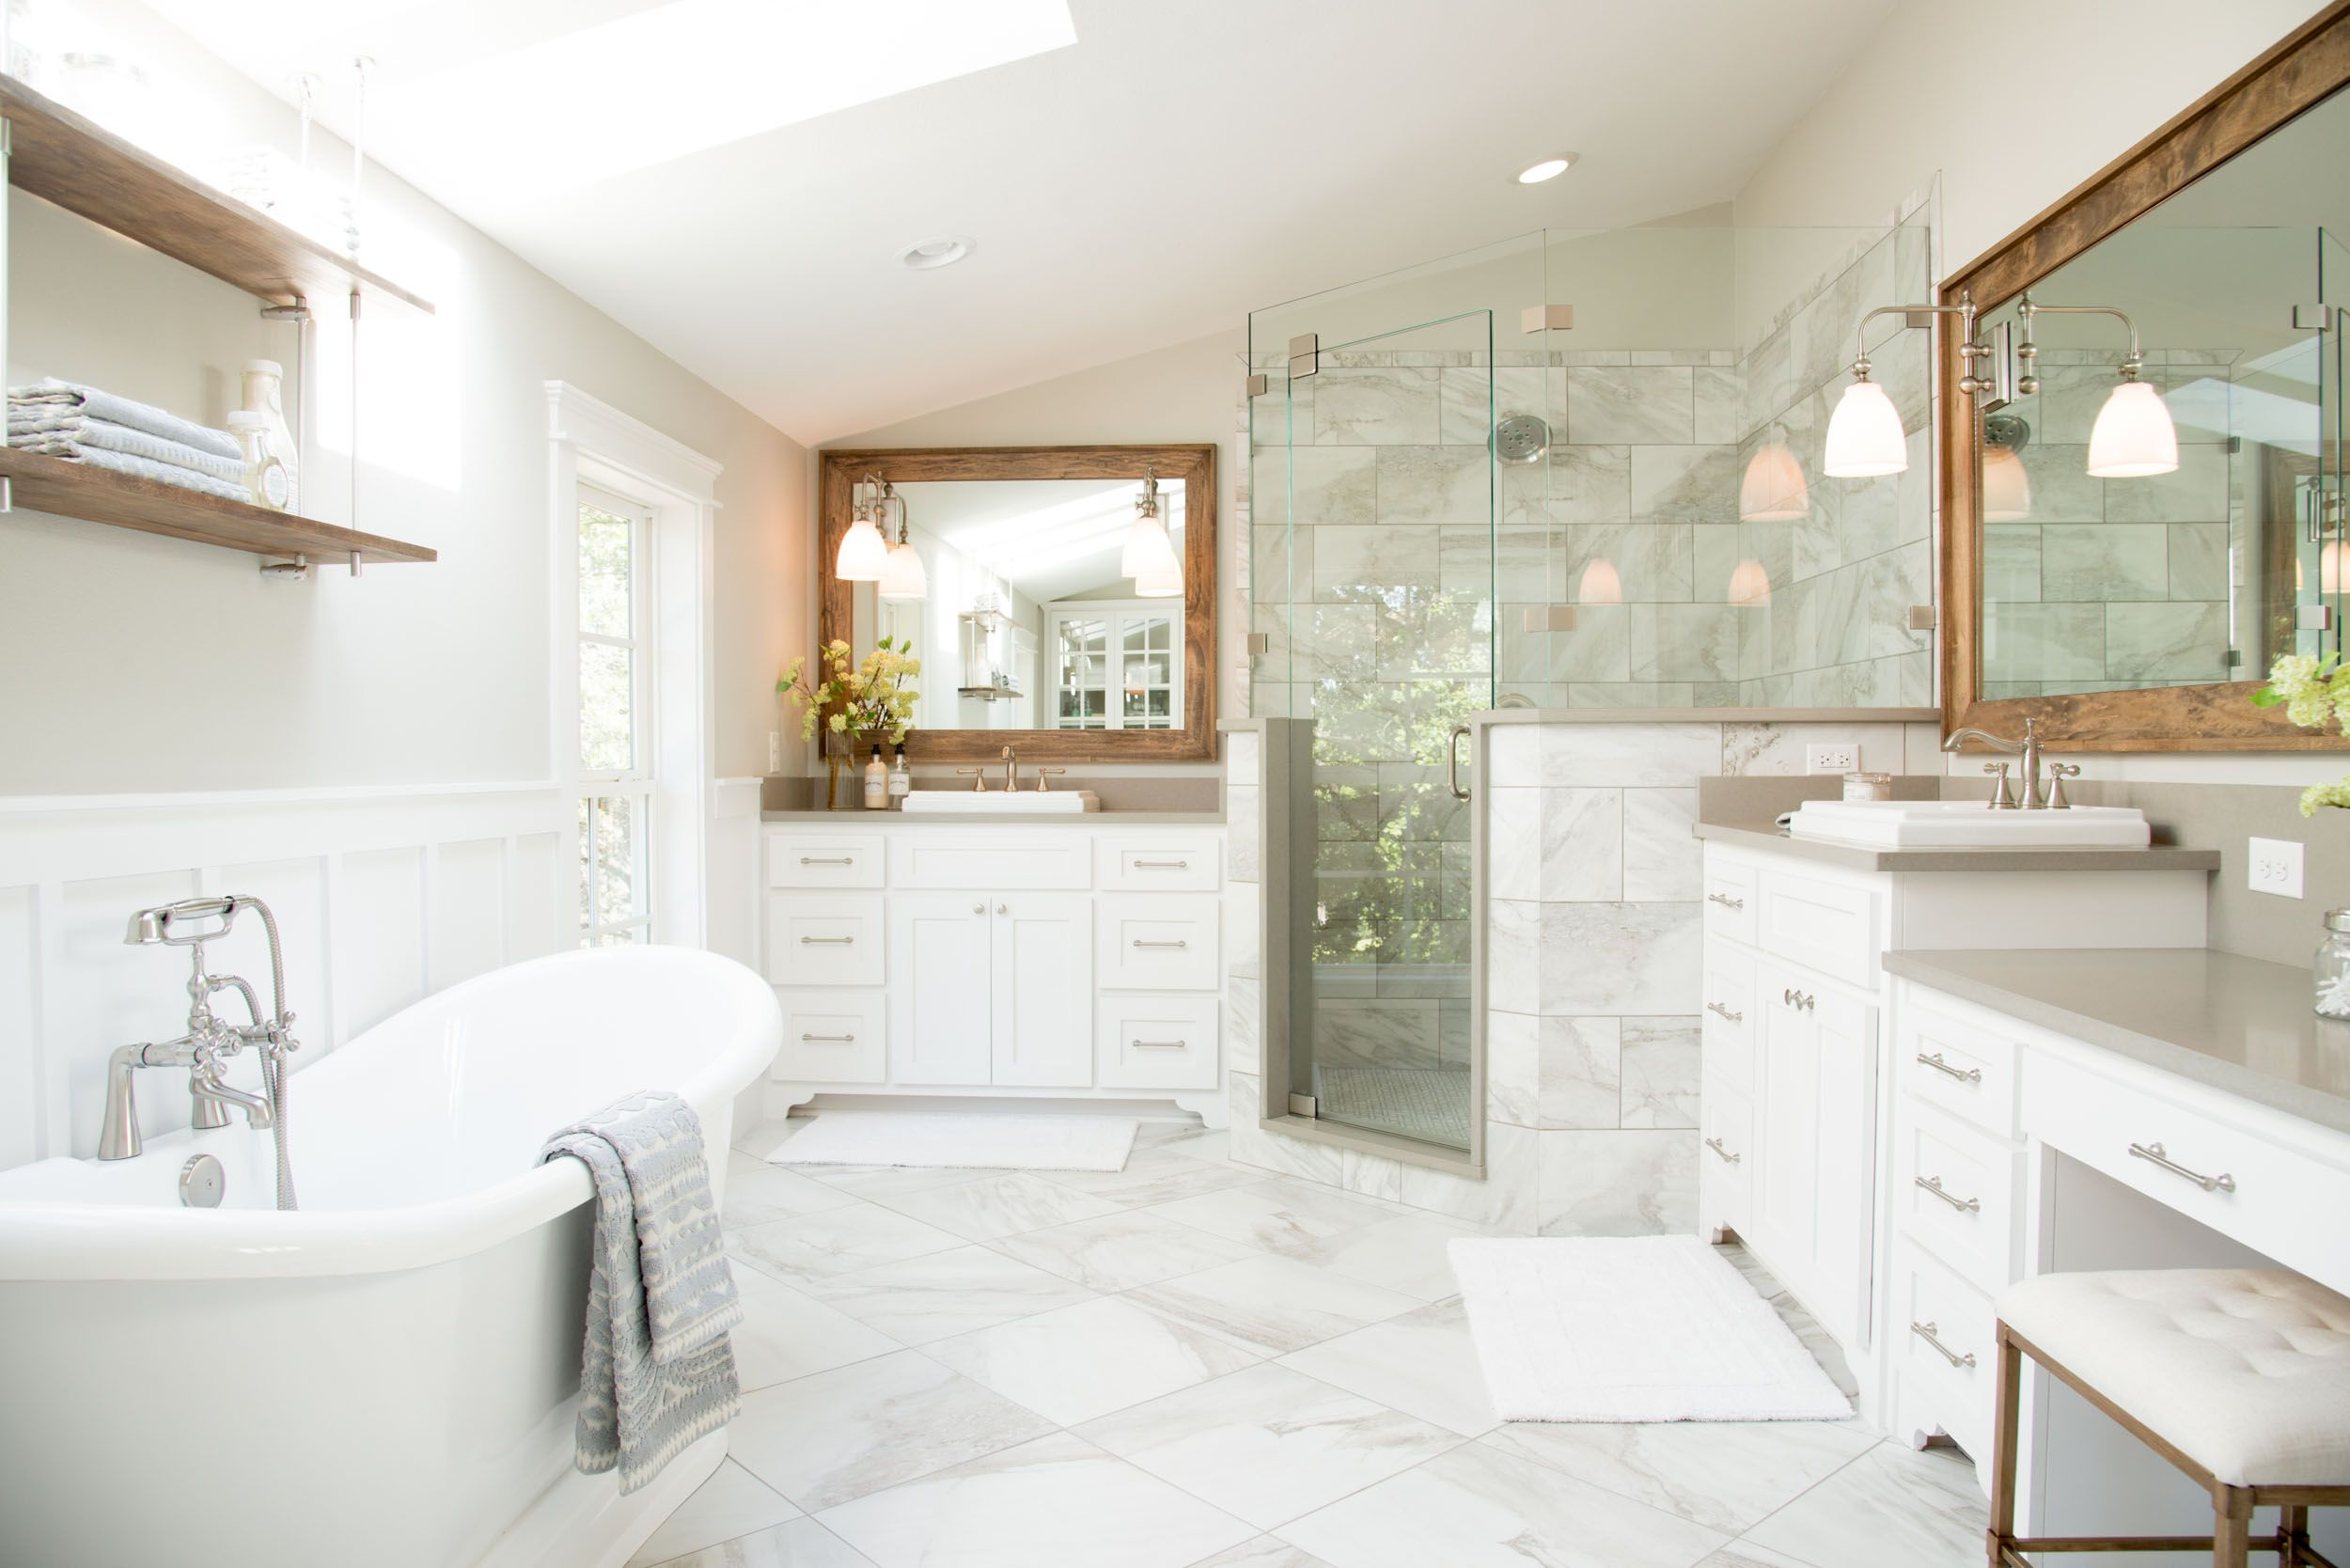 Bathroom Remodels On Fixer Upper season 4 episode 1 | house seasons, joanna gaines and magnolia